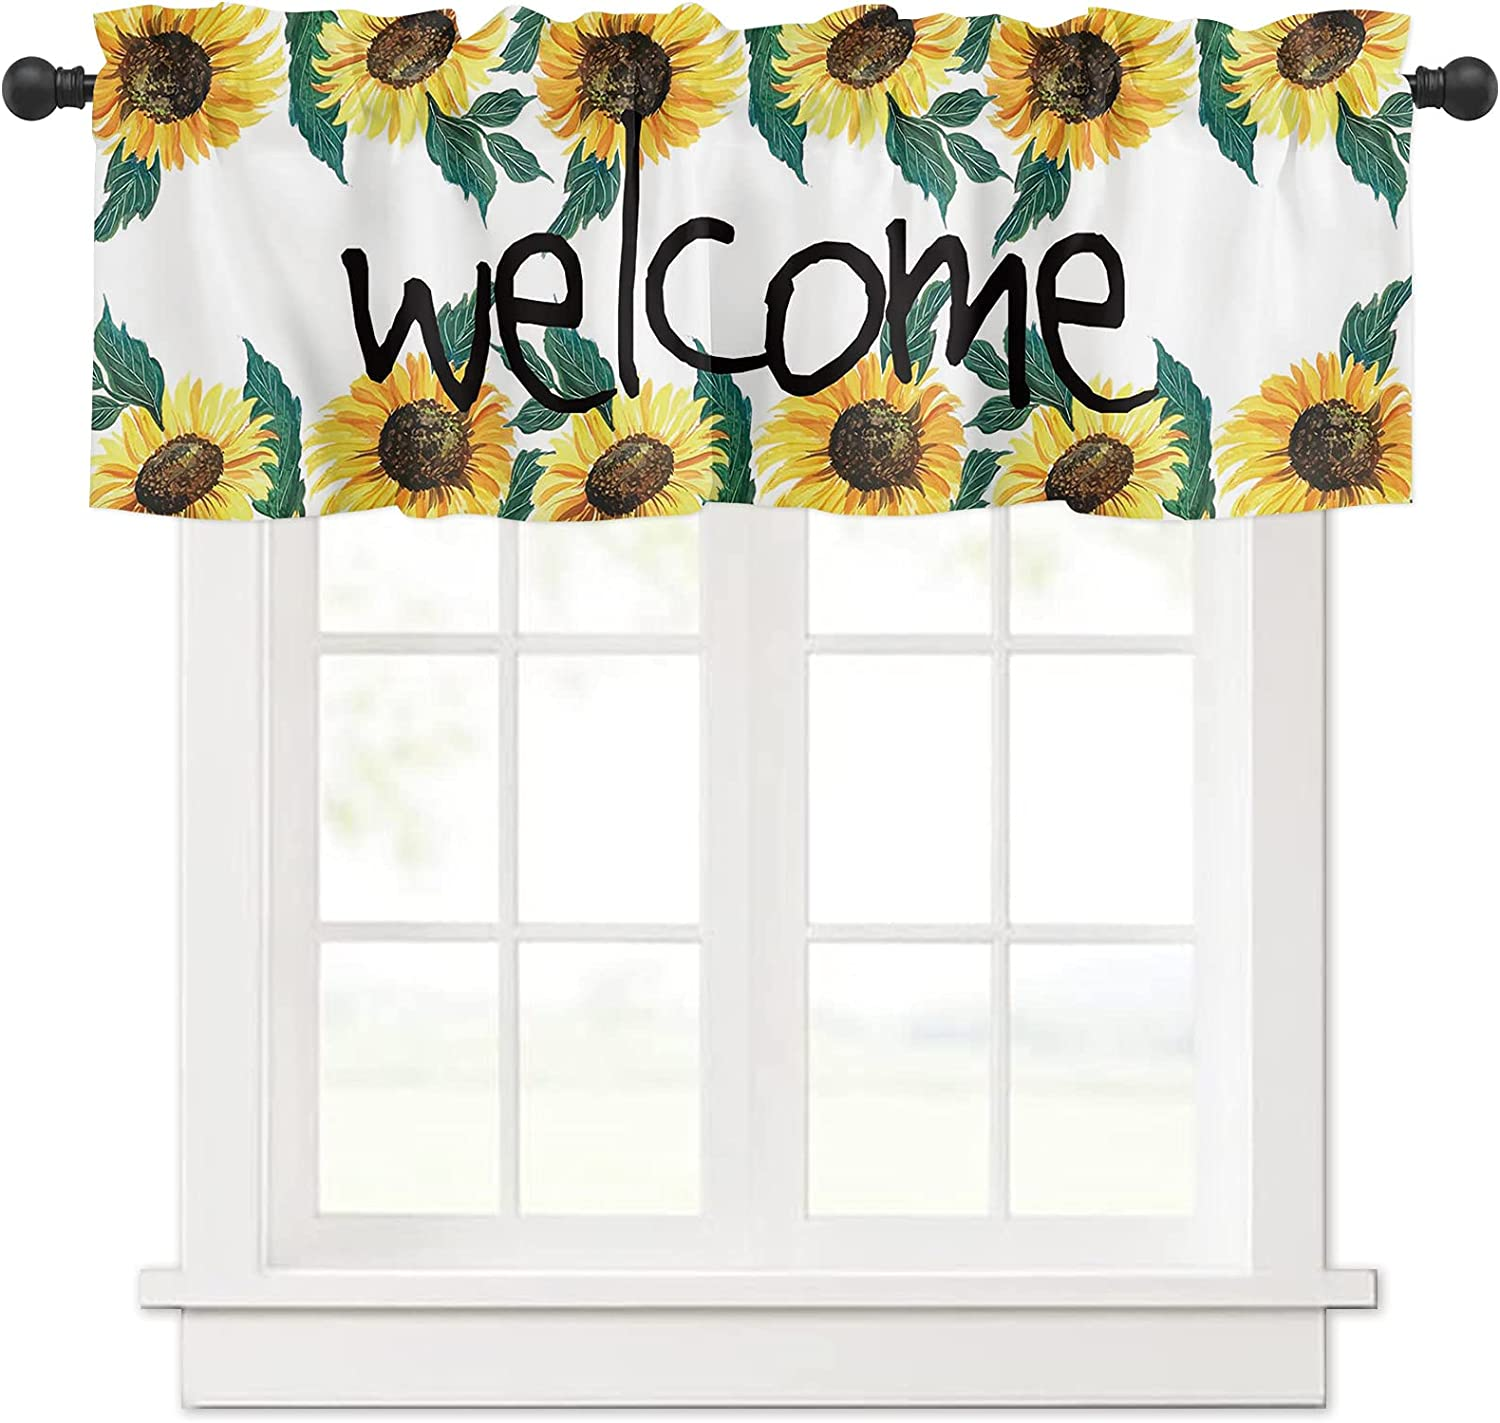 Welcome Retro overseas Sunflowers Watercolor for Curtain Windows Valances Super-cheap